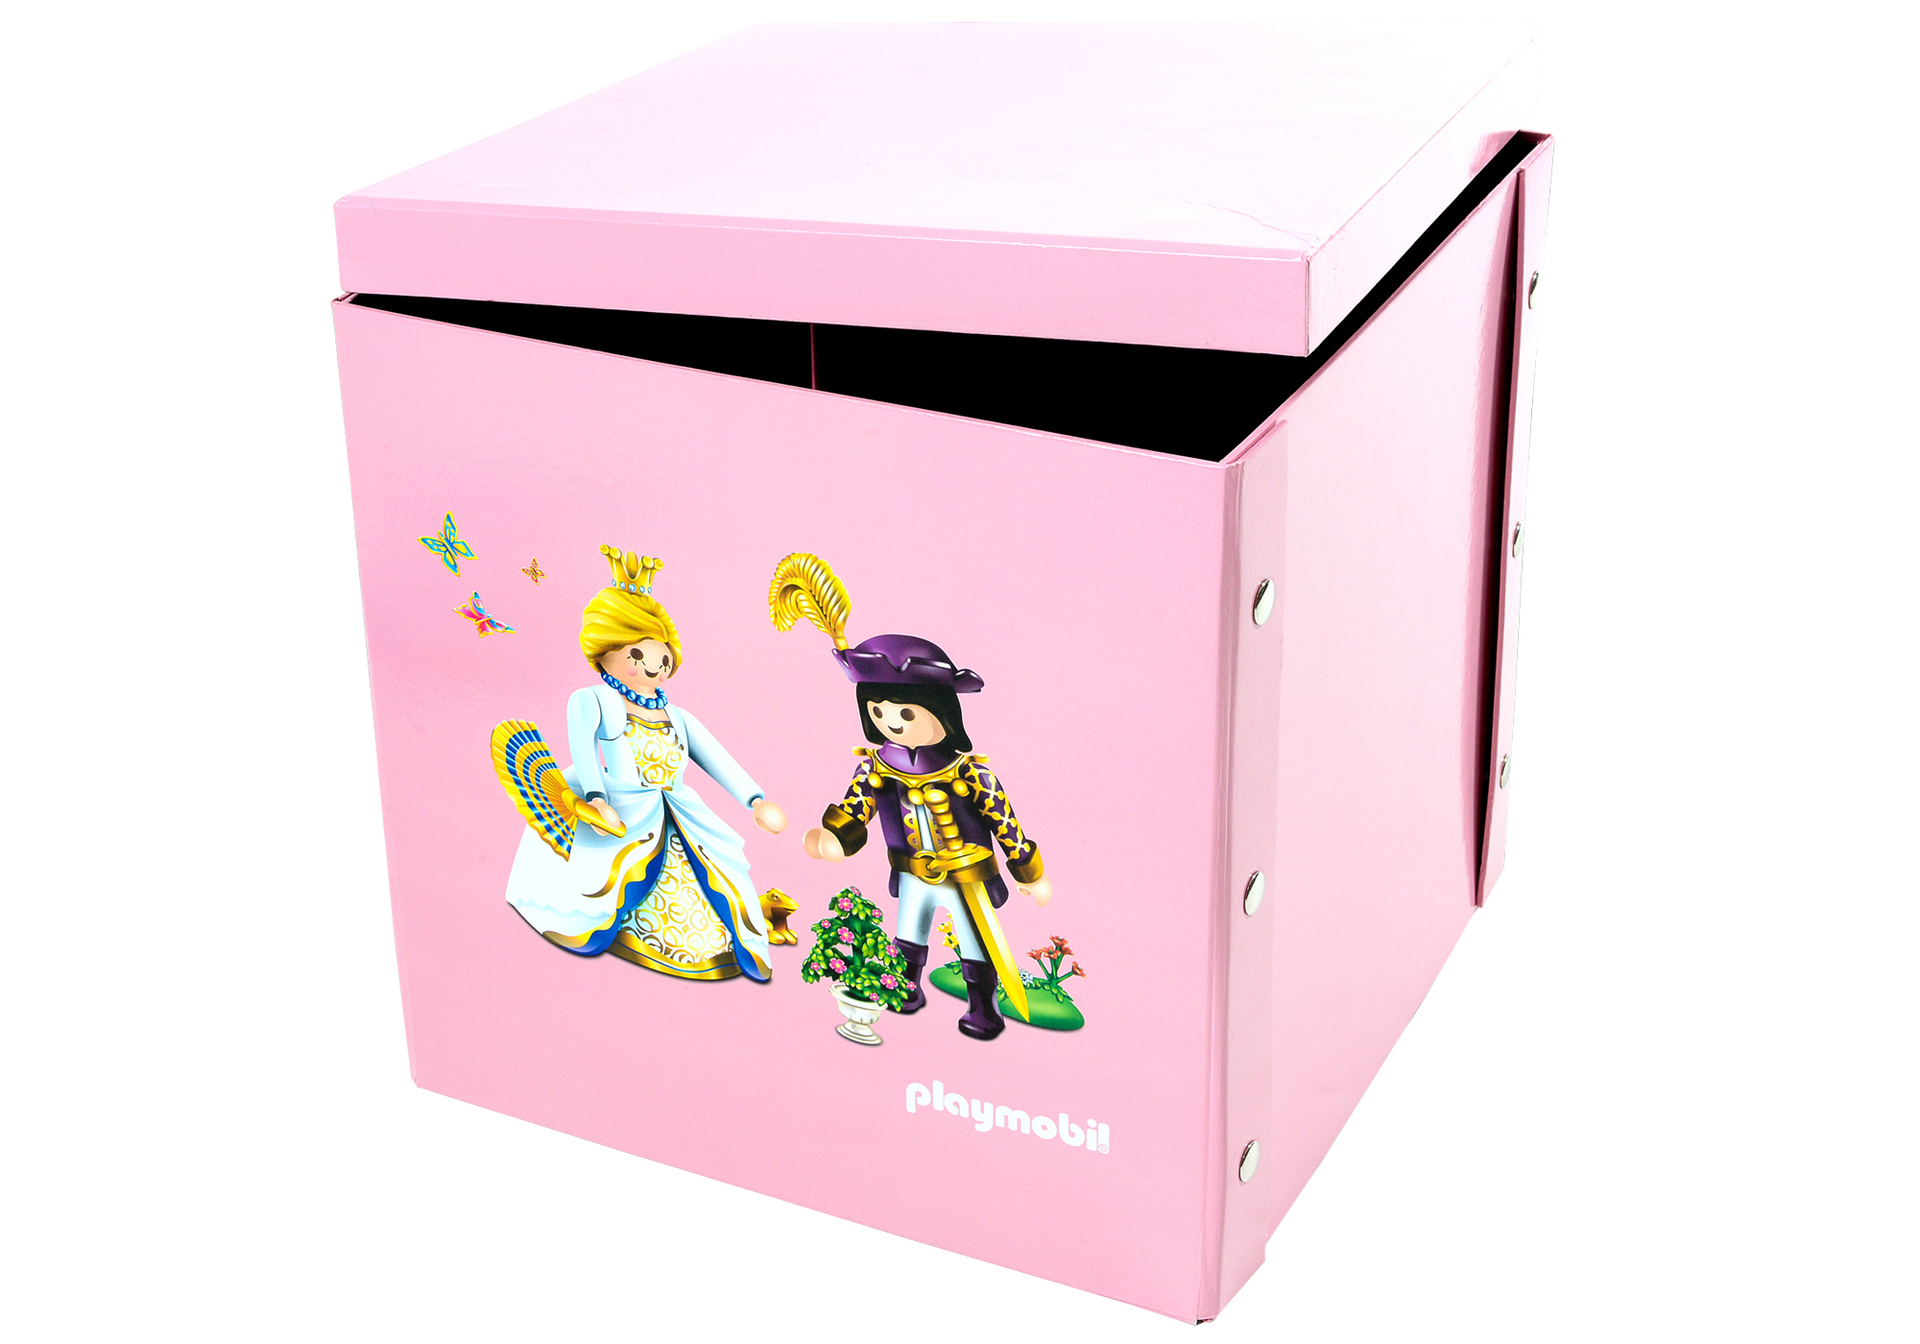 bo te de jeu et rangement princesses 80463 playmobil france. Black Bedroom Furniture Sets. Home Design Ideas